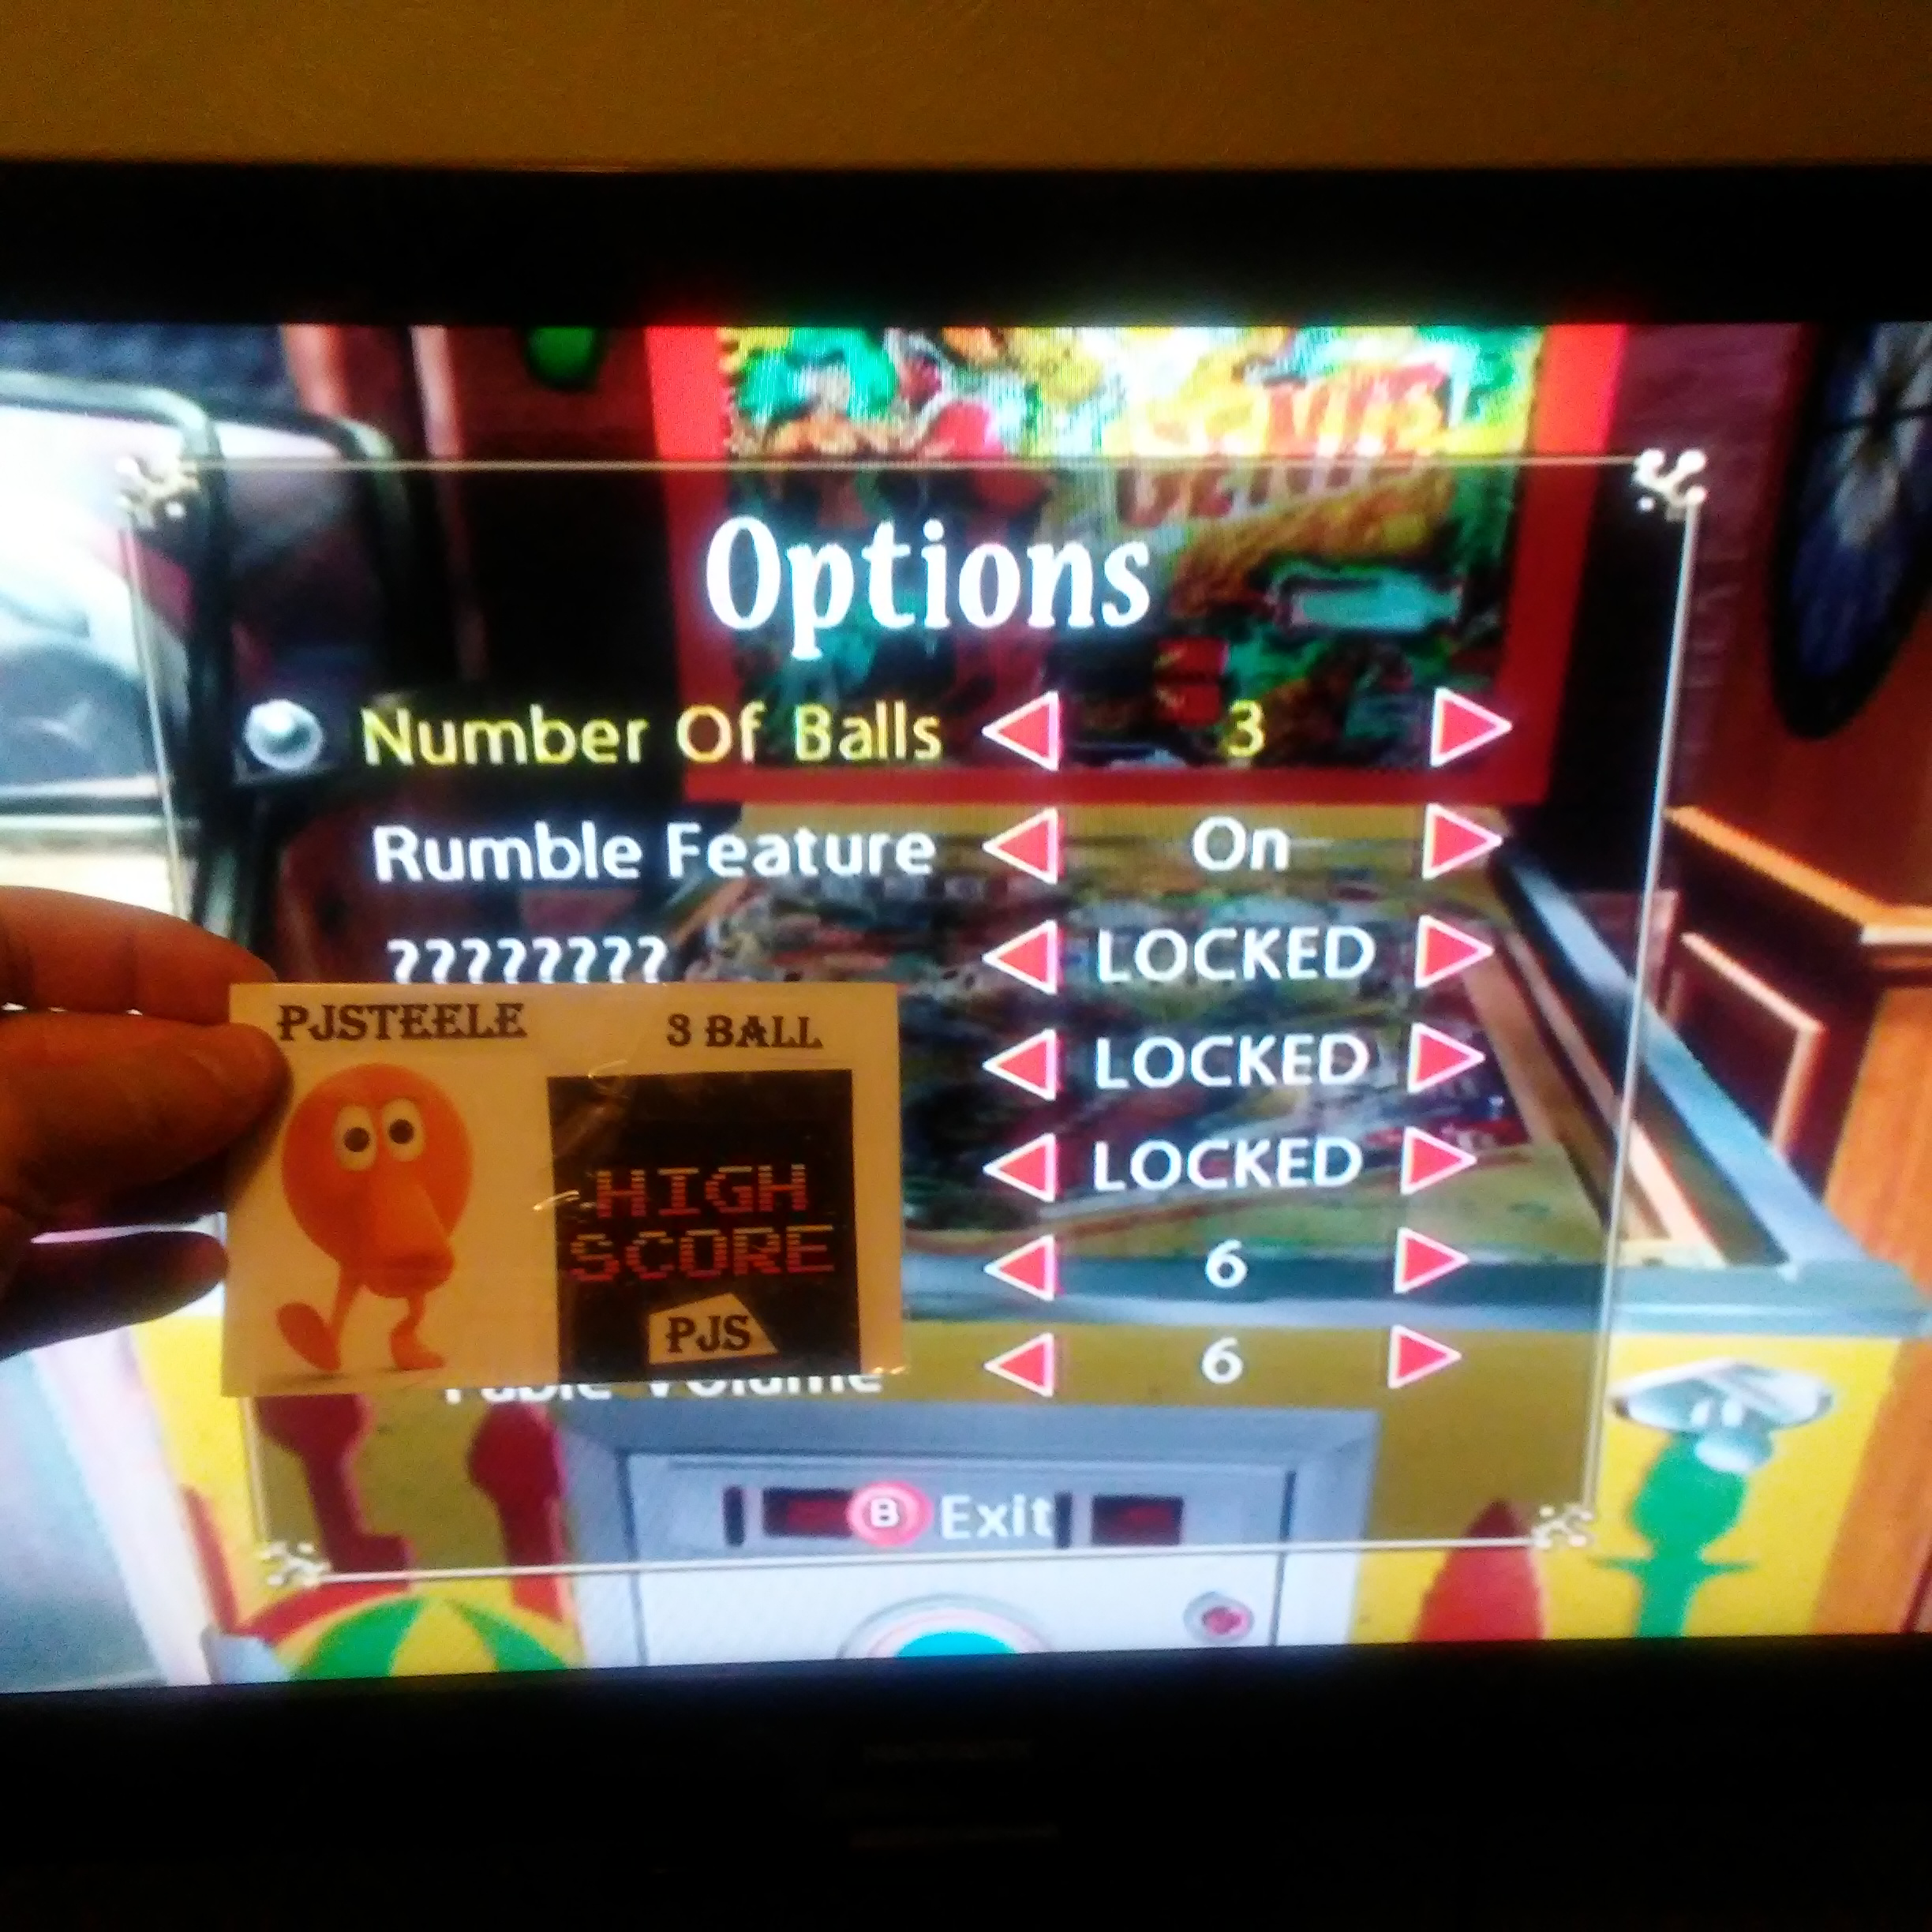 Pjsteele: Pinball Hall of Fame: The Gottlieb Collection: Genie [3 Balls] (GameCube) 165,680 points on 2018-01-28 13:46:11